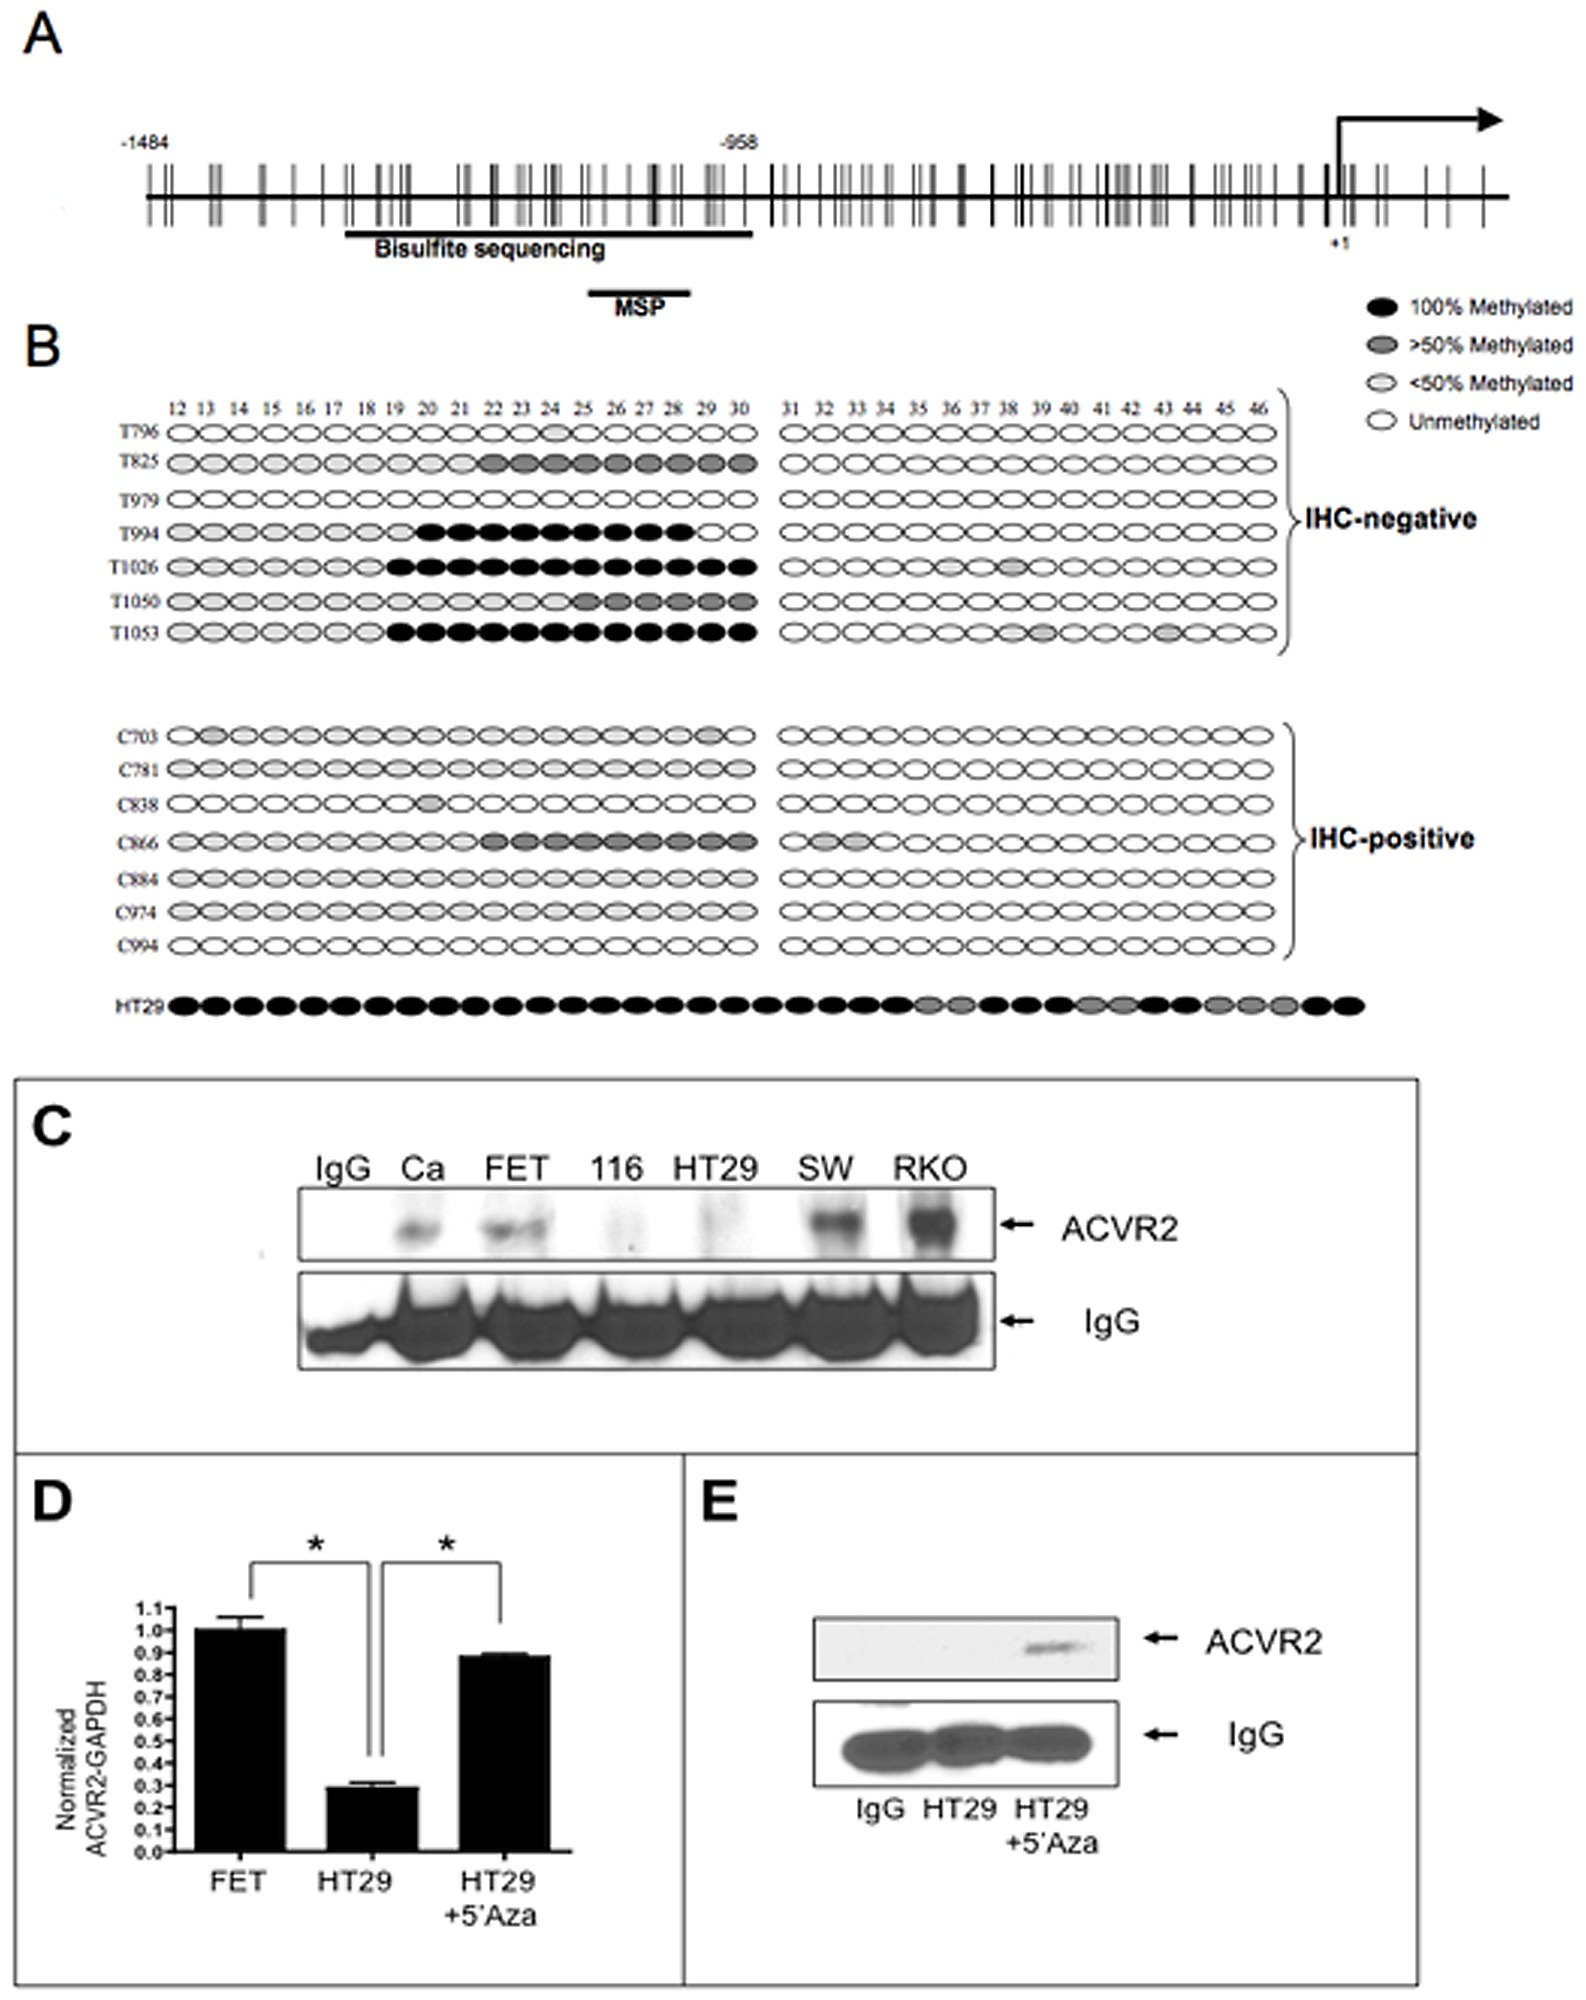 Acvr2 Promoter Hypermethylation And Loh In Colon Cancer Specimens And The Mss Ht29 Cell Line And Correlation Of Acvr2 Promoter Hypermethylation And Loss Of Acvr2 Expression